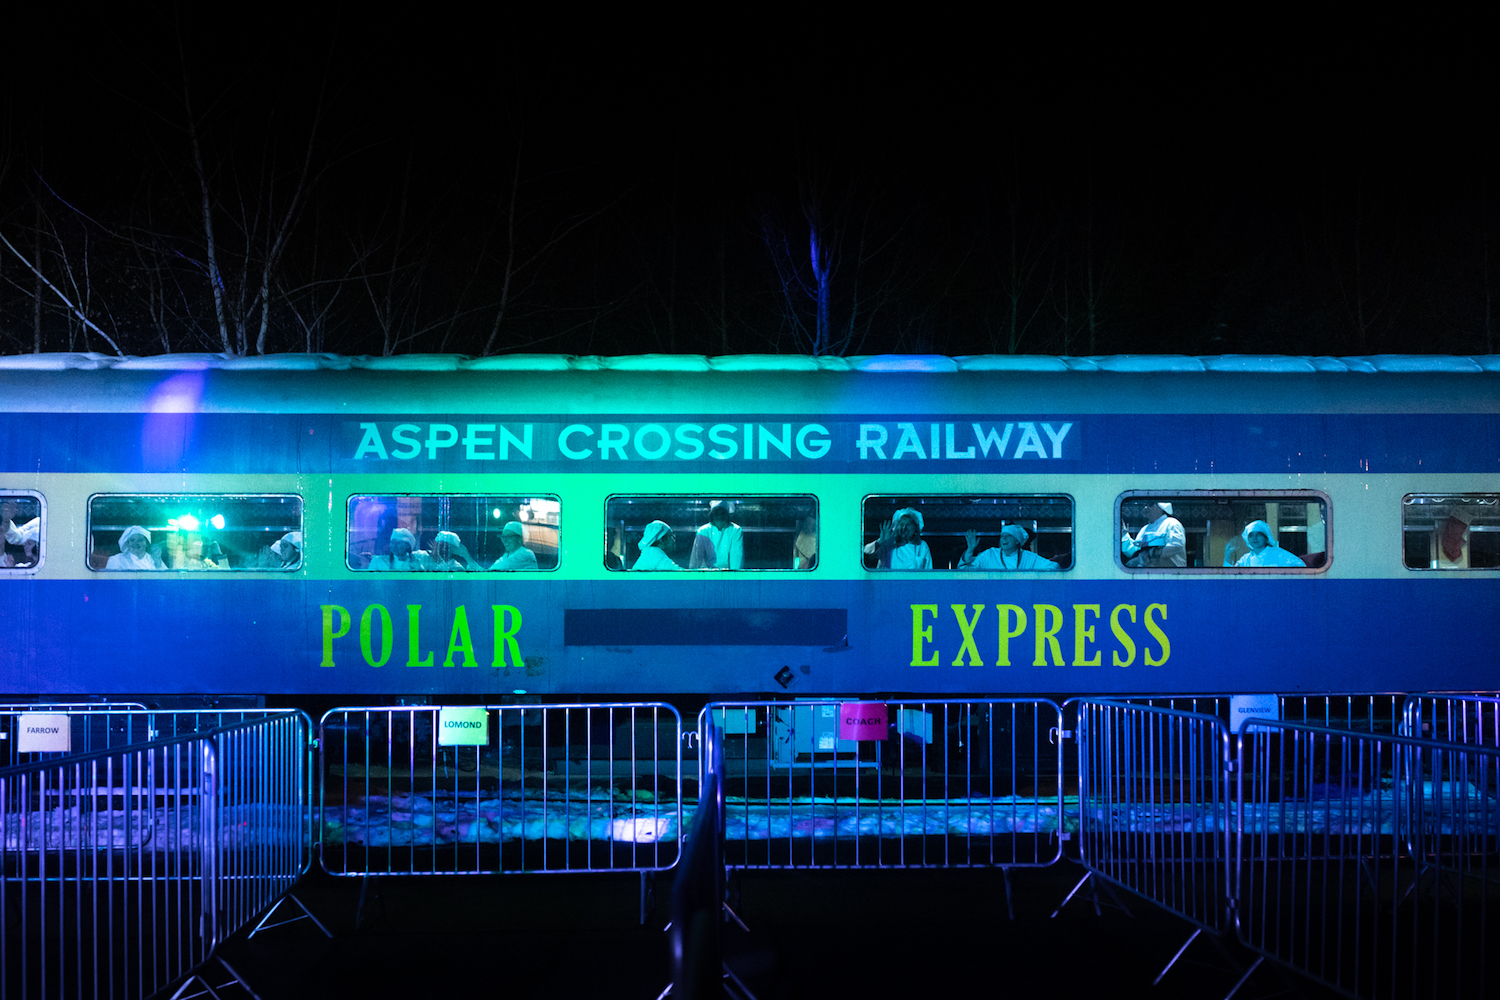 calgary aspen crossing polar express